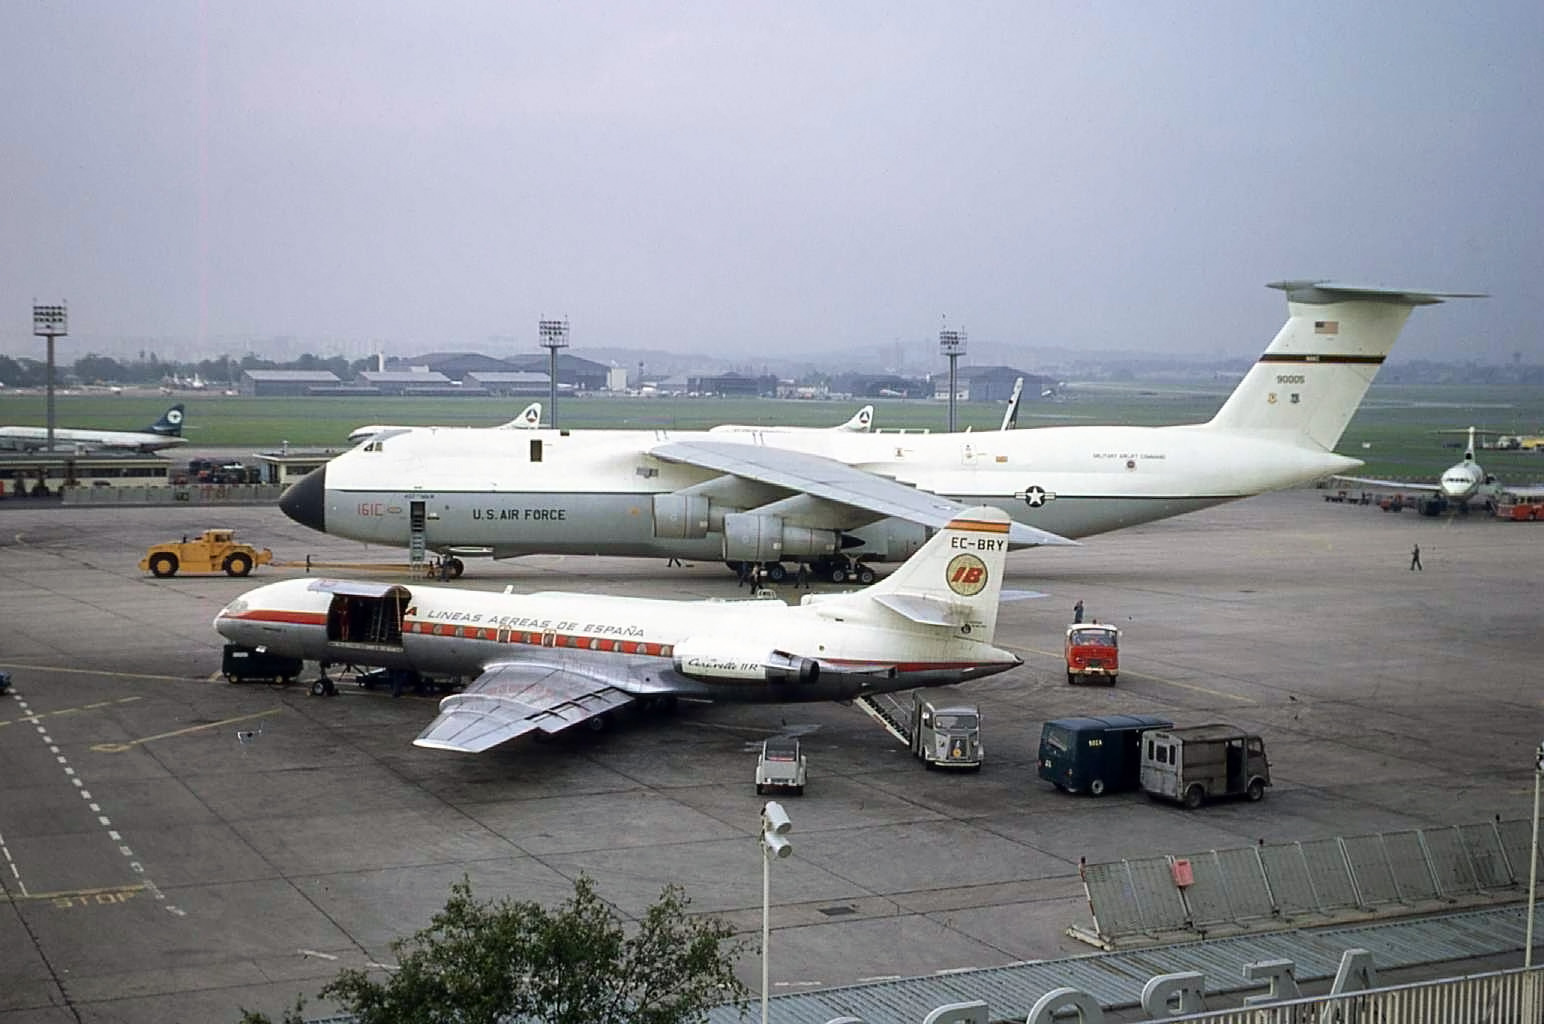 Paris Le Bourget - September 1971 and an Iberia Caravelle is dwarfed by a mighty USAF C5 Galaxy. What else can we see? A number of Caravelles,Daks, a Cyprus ? Trident and a UTA Dc8.. This was my favourite airport as it always had a few surprises in store